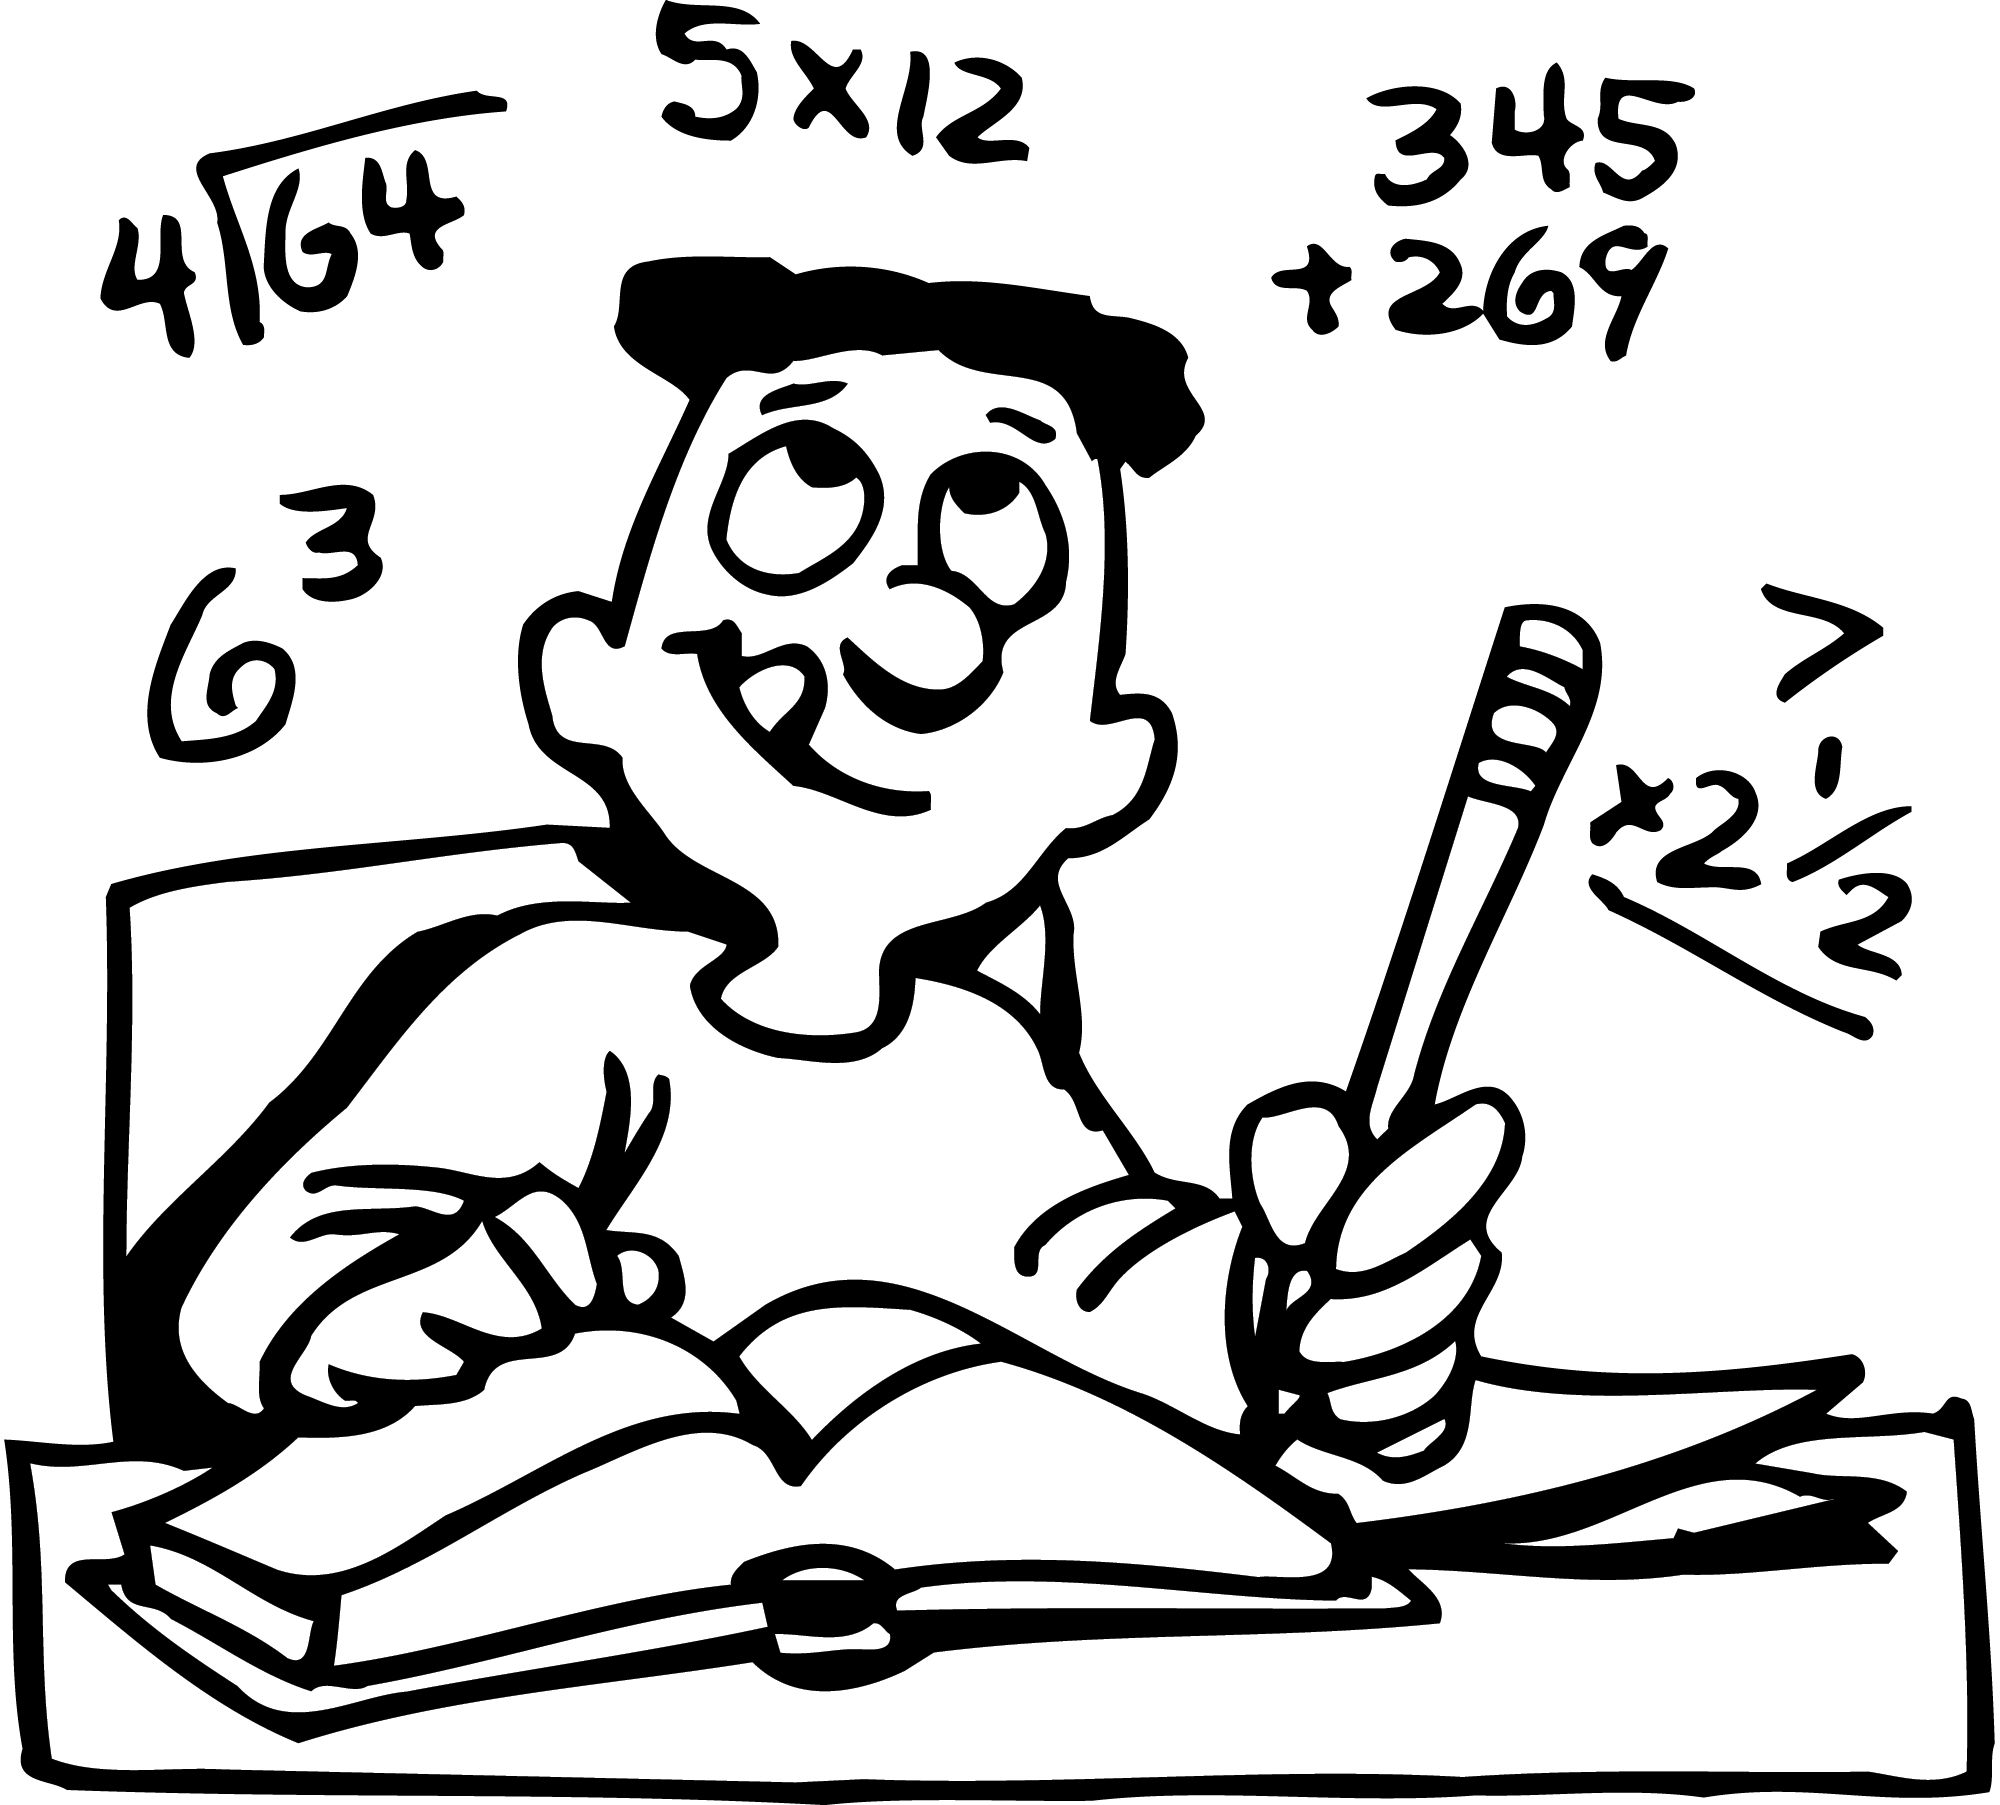 Homework clipart black and white Math black white Math Math